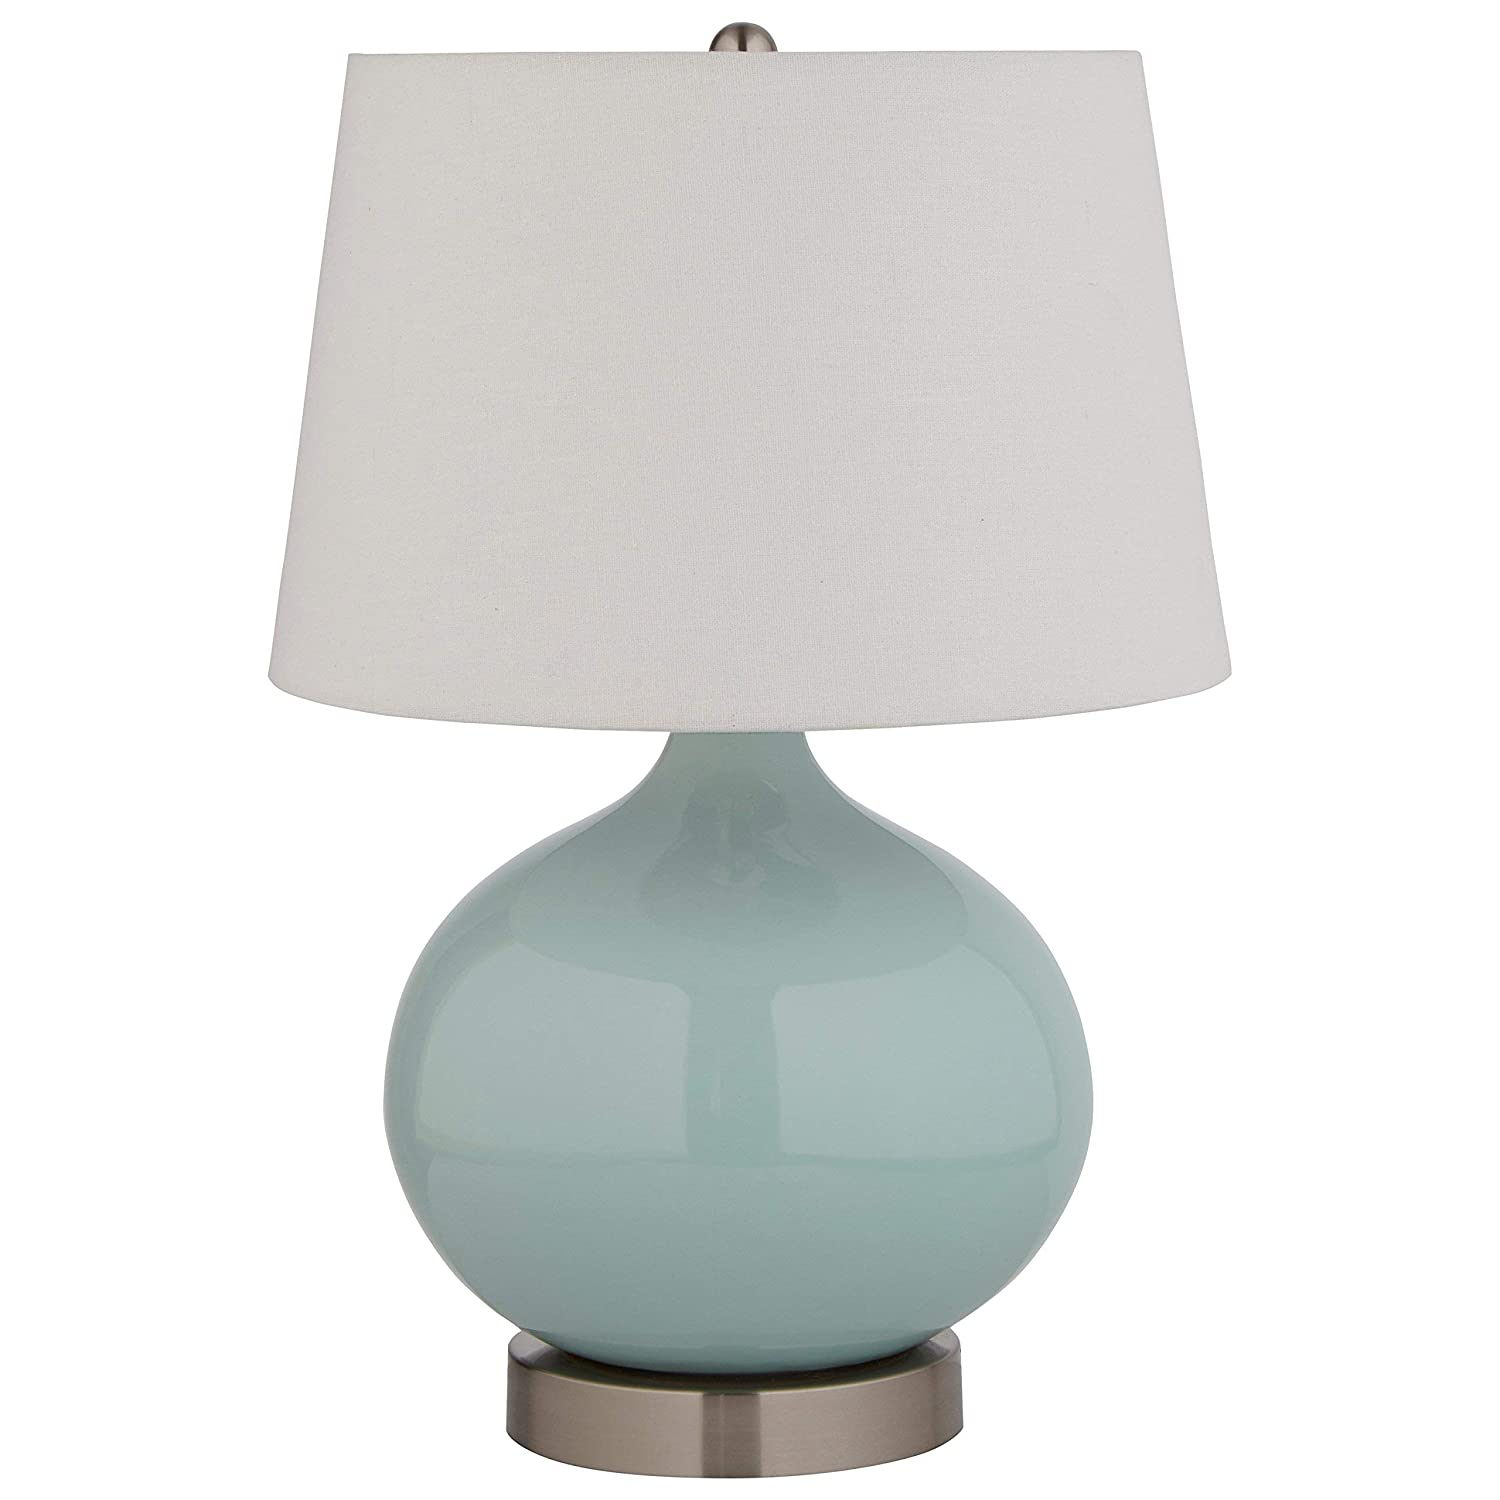 "Stone & Beam Cyan Ceramic Lamp, 20""H, With Bulb, White Shade"